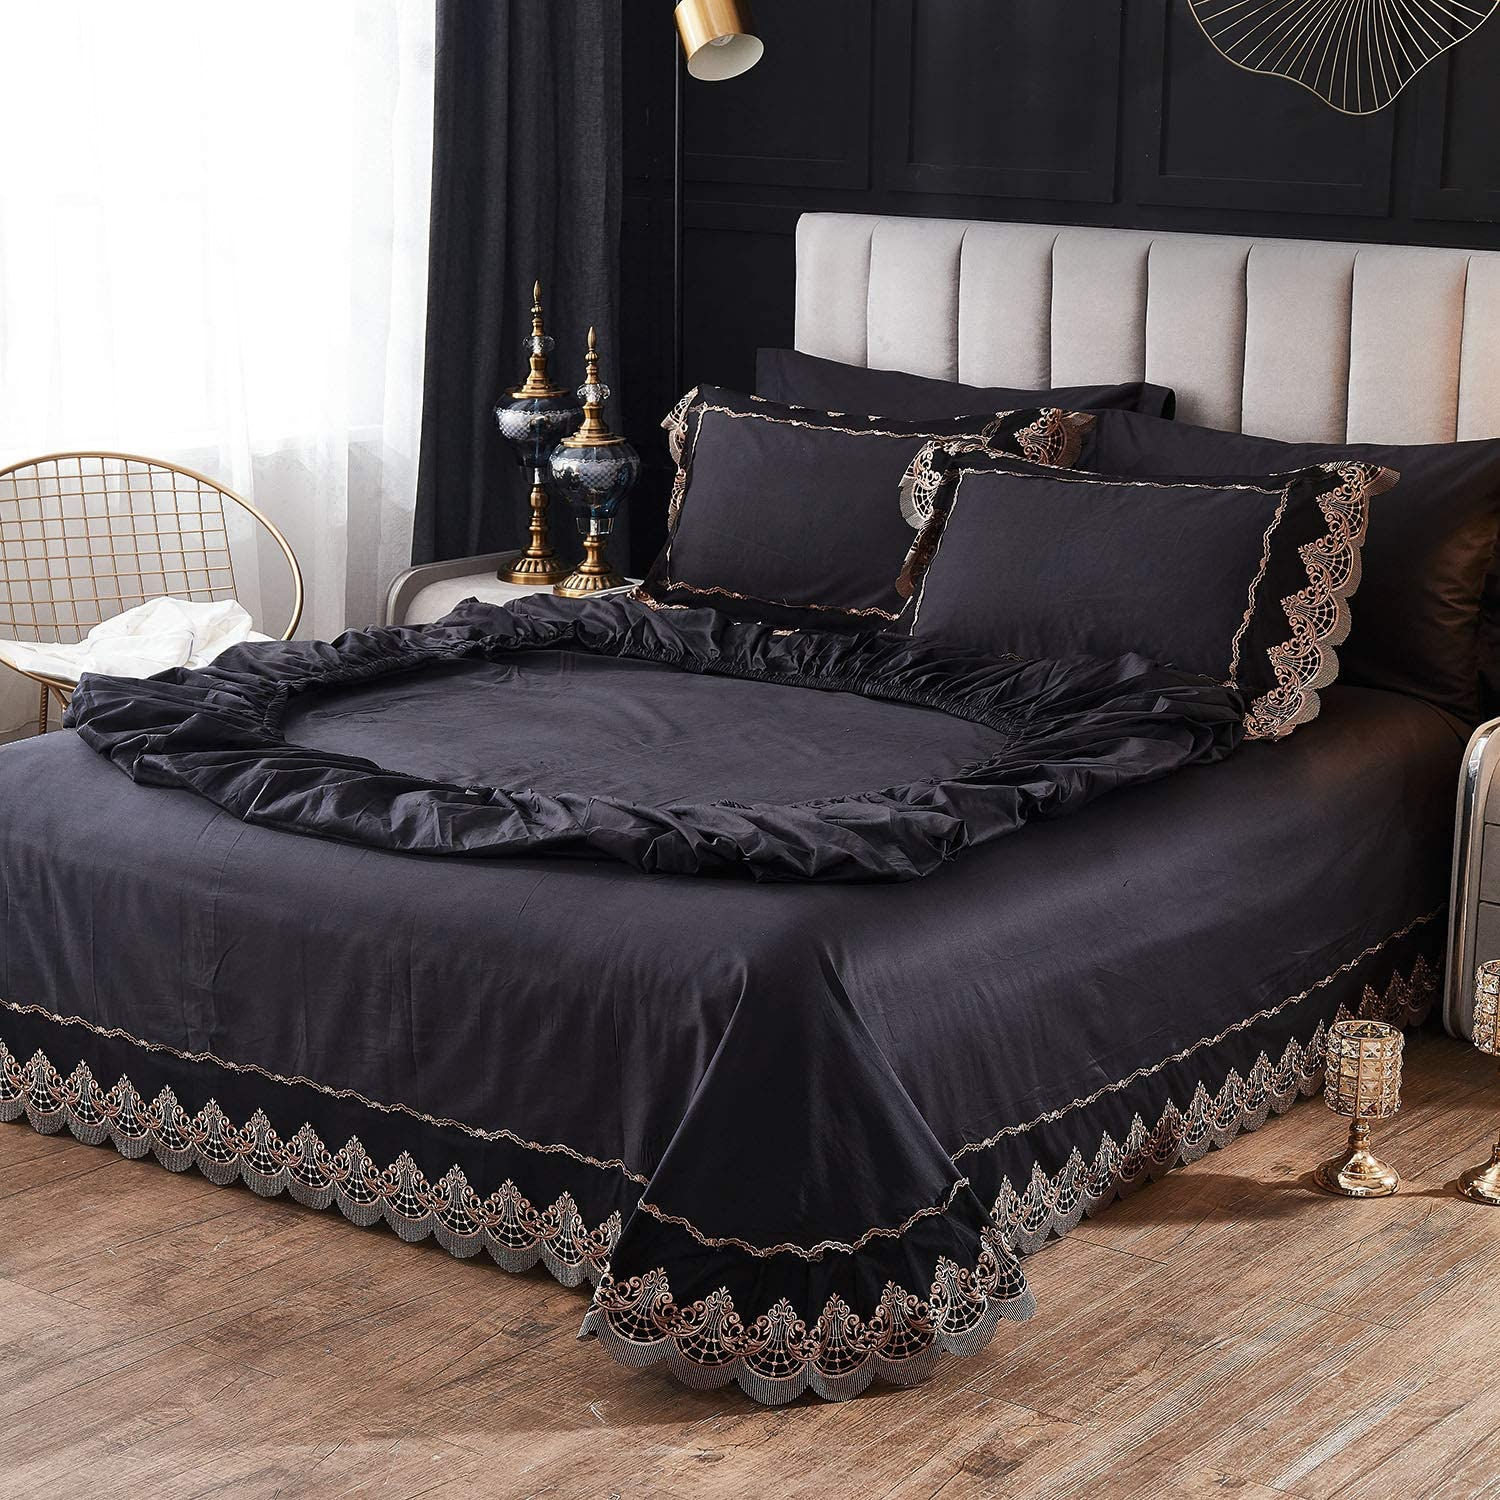 FADFAY Queen Sheets Set - Black Hotel Luxury 4-Piece Bed Set, Premiun 100% Cotton Hypoallergenic Gold Lace Designed Deep Pocket Fitted Sheets 18 inch, Sheet & Pillow Case Set (Queen, Black)